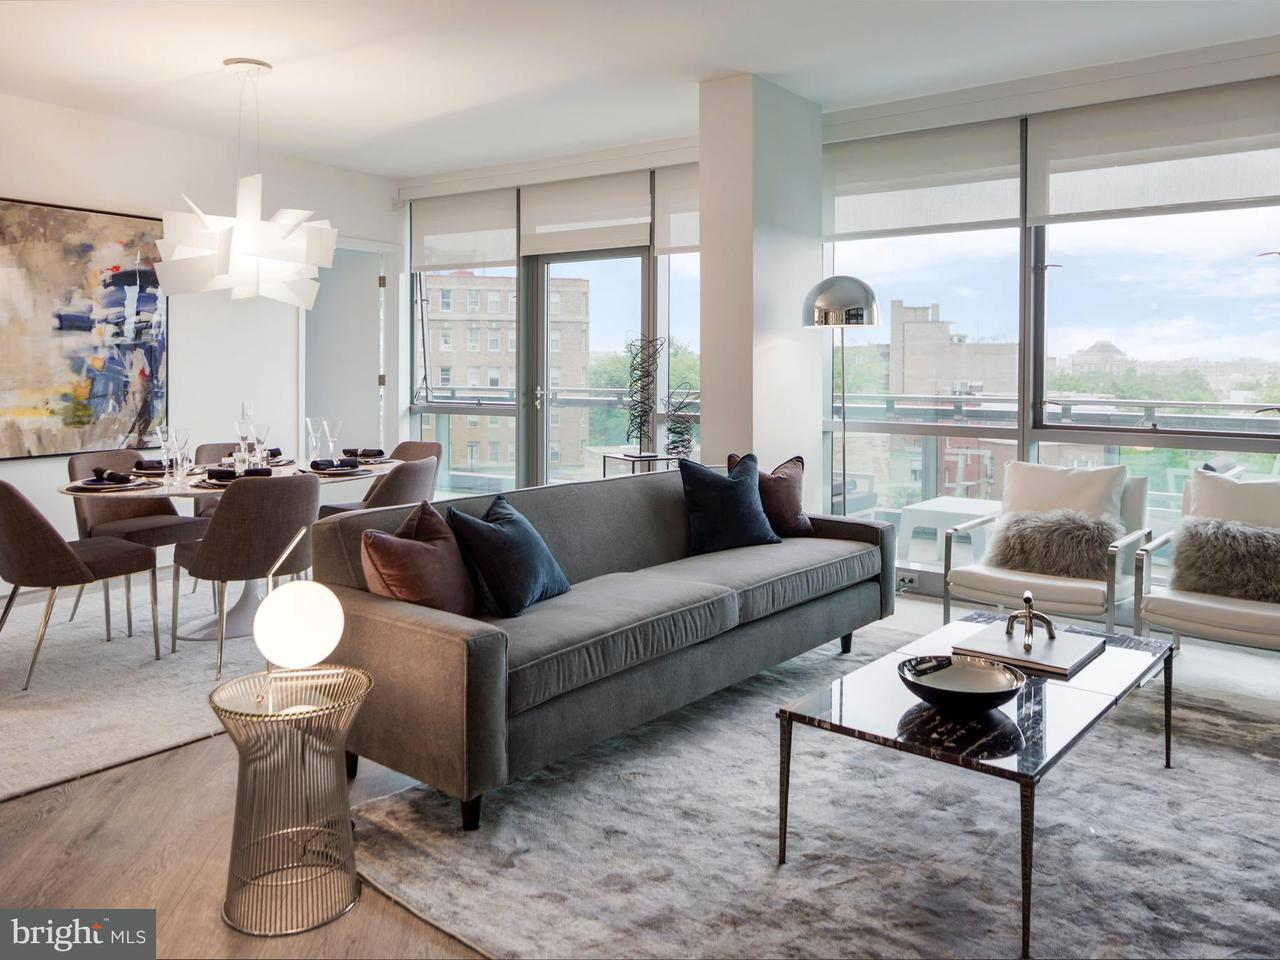 Other Residential for Rent at 1901 Connecticut Ave NW #318 Washington, District Of Columbia 20009 United States